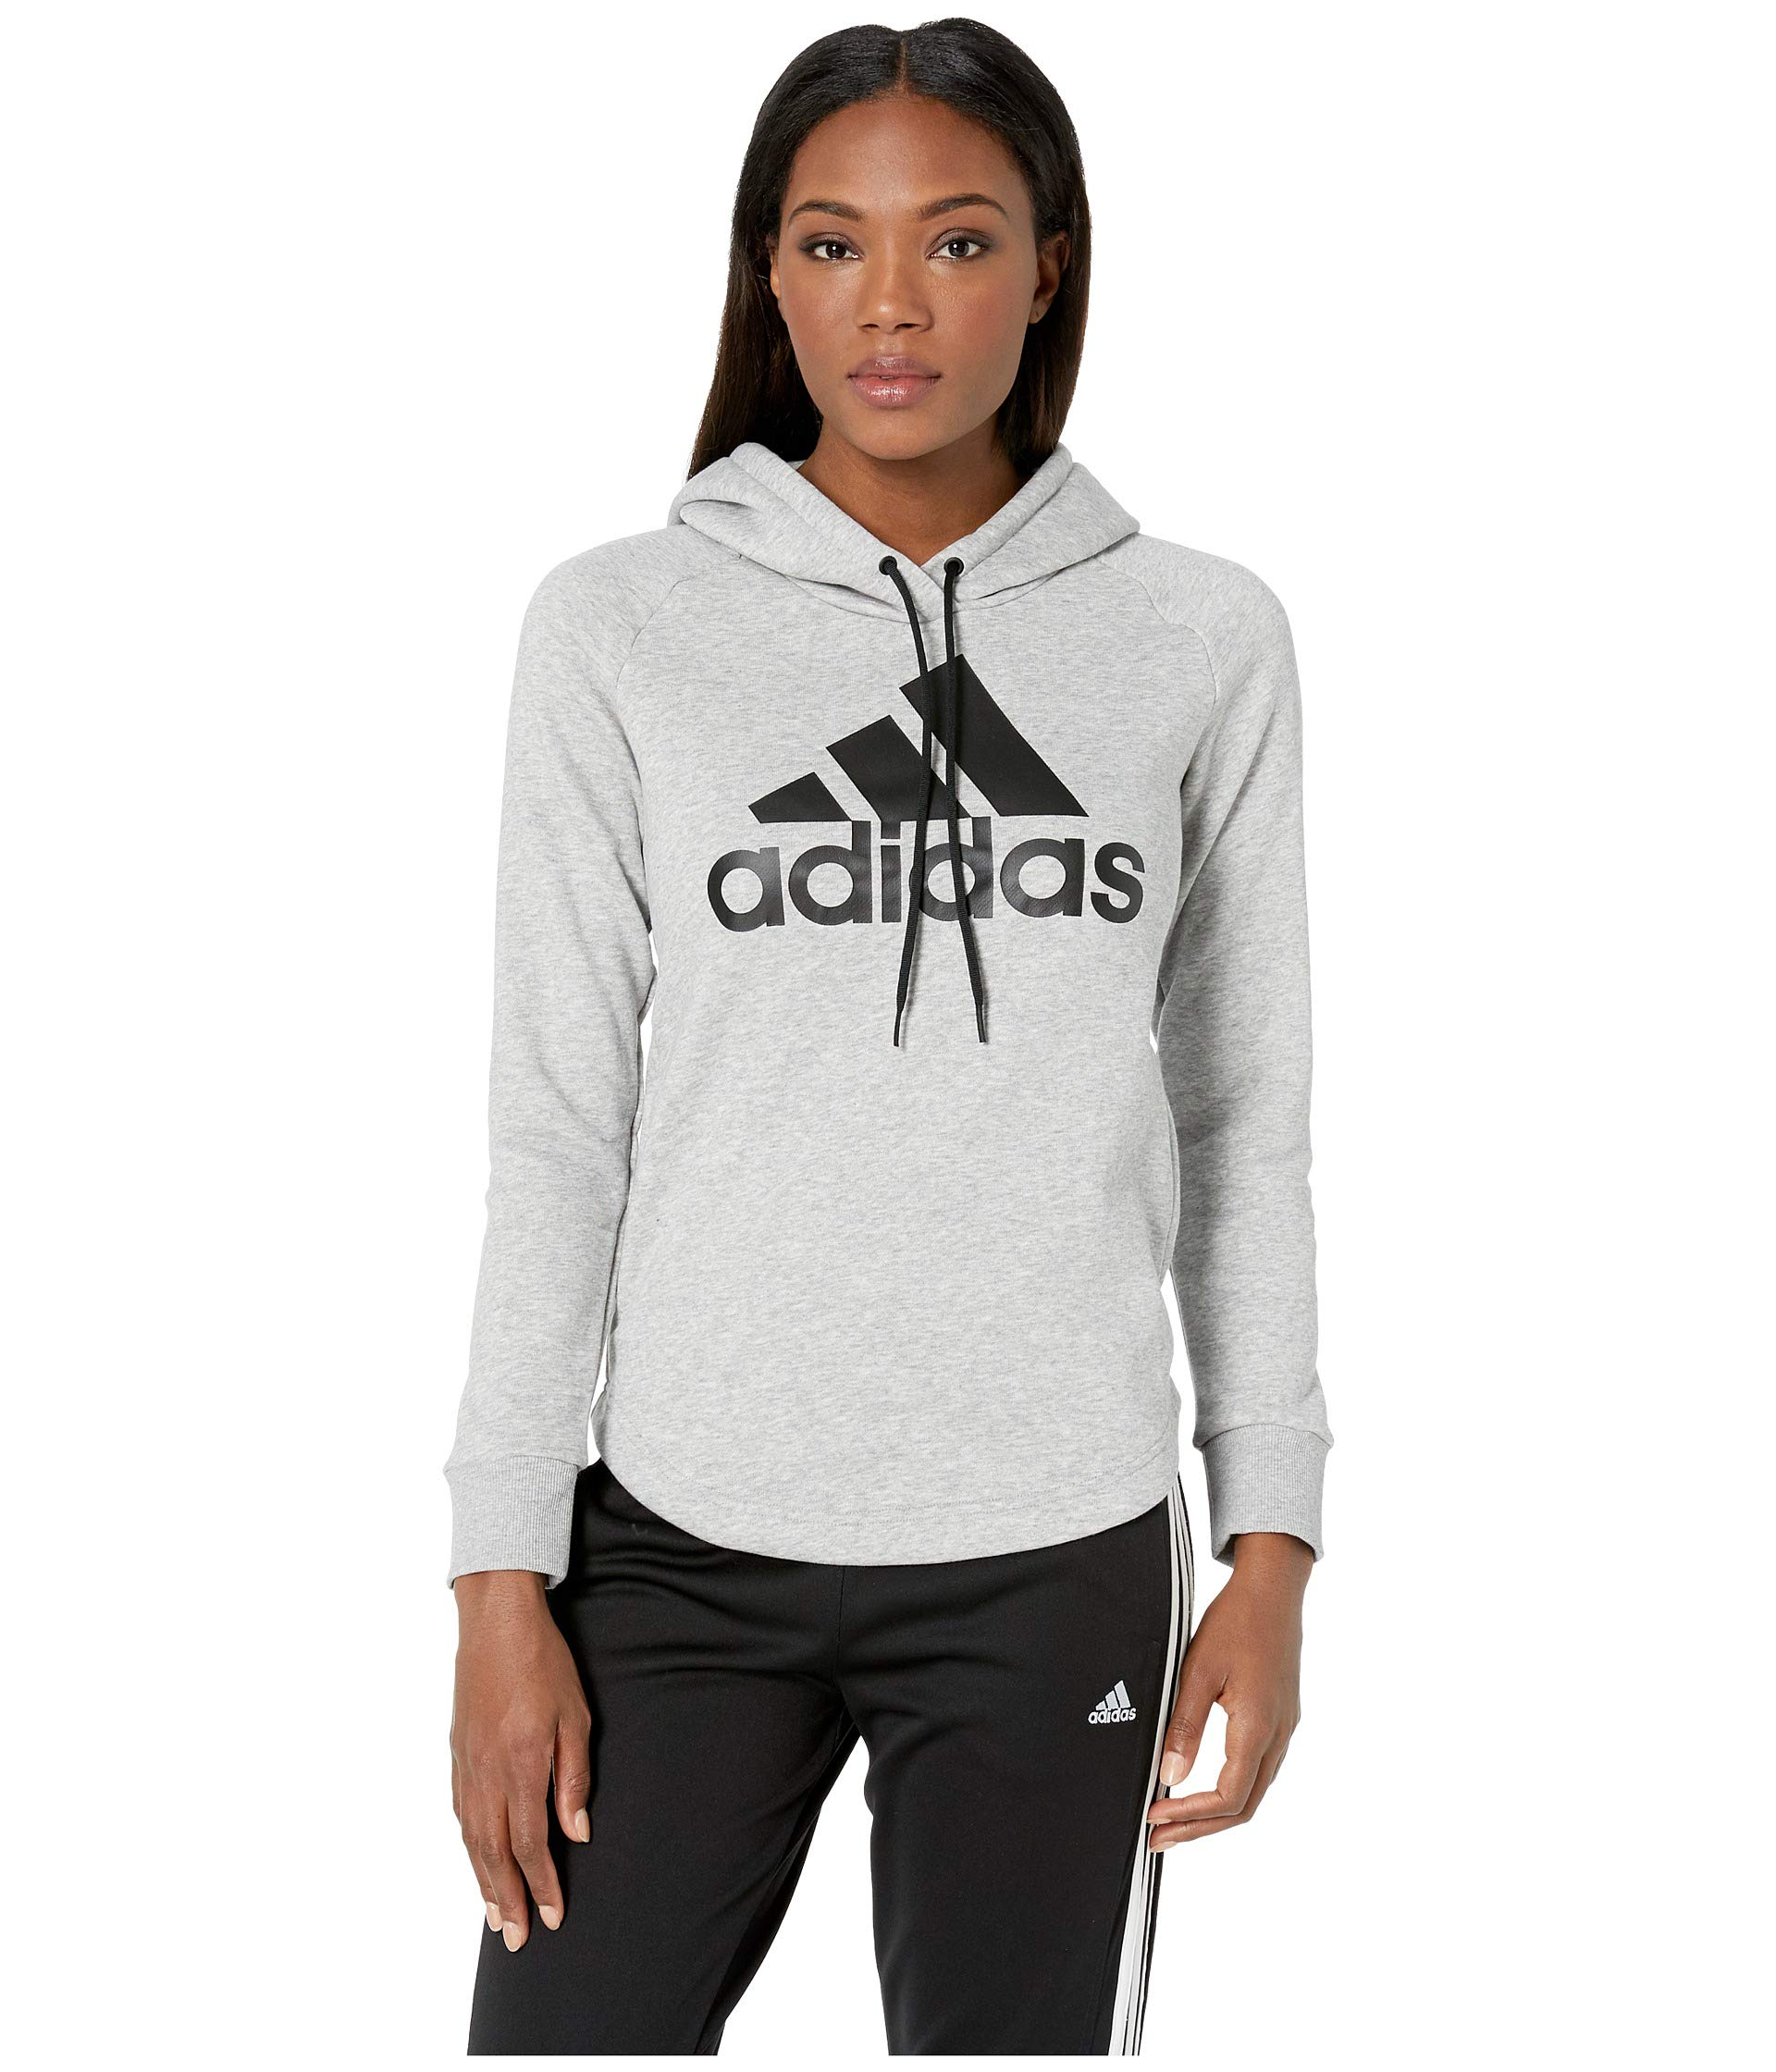 adidas Women's Must Have Hoodie Medium Grey Heather/Black Small